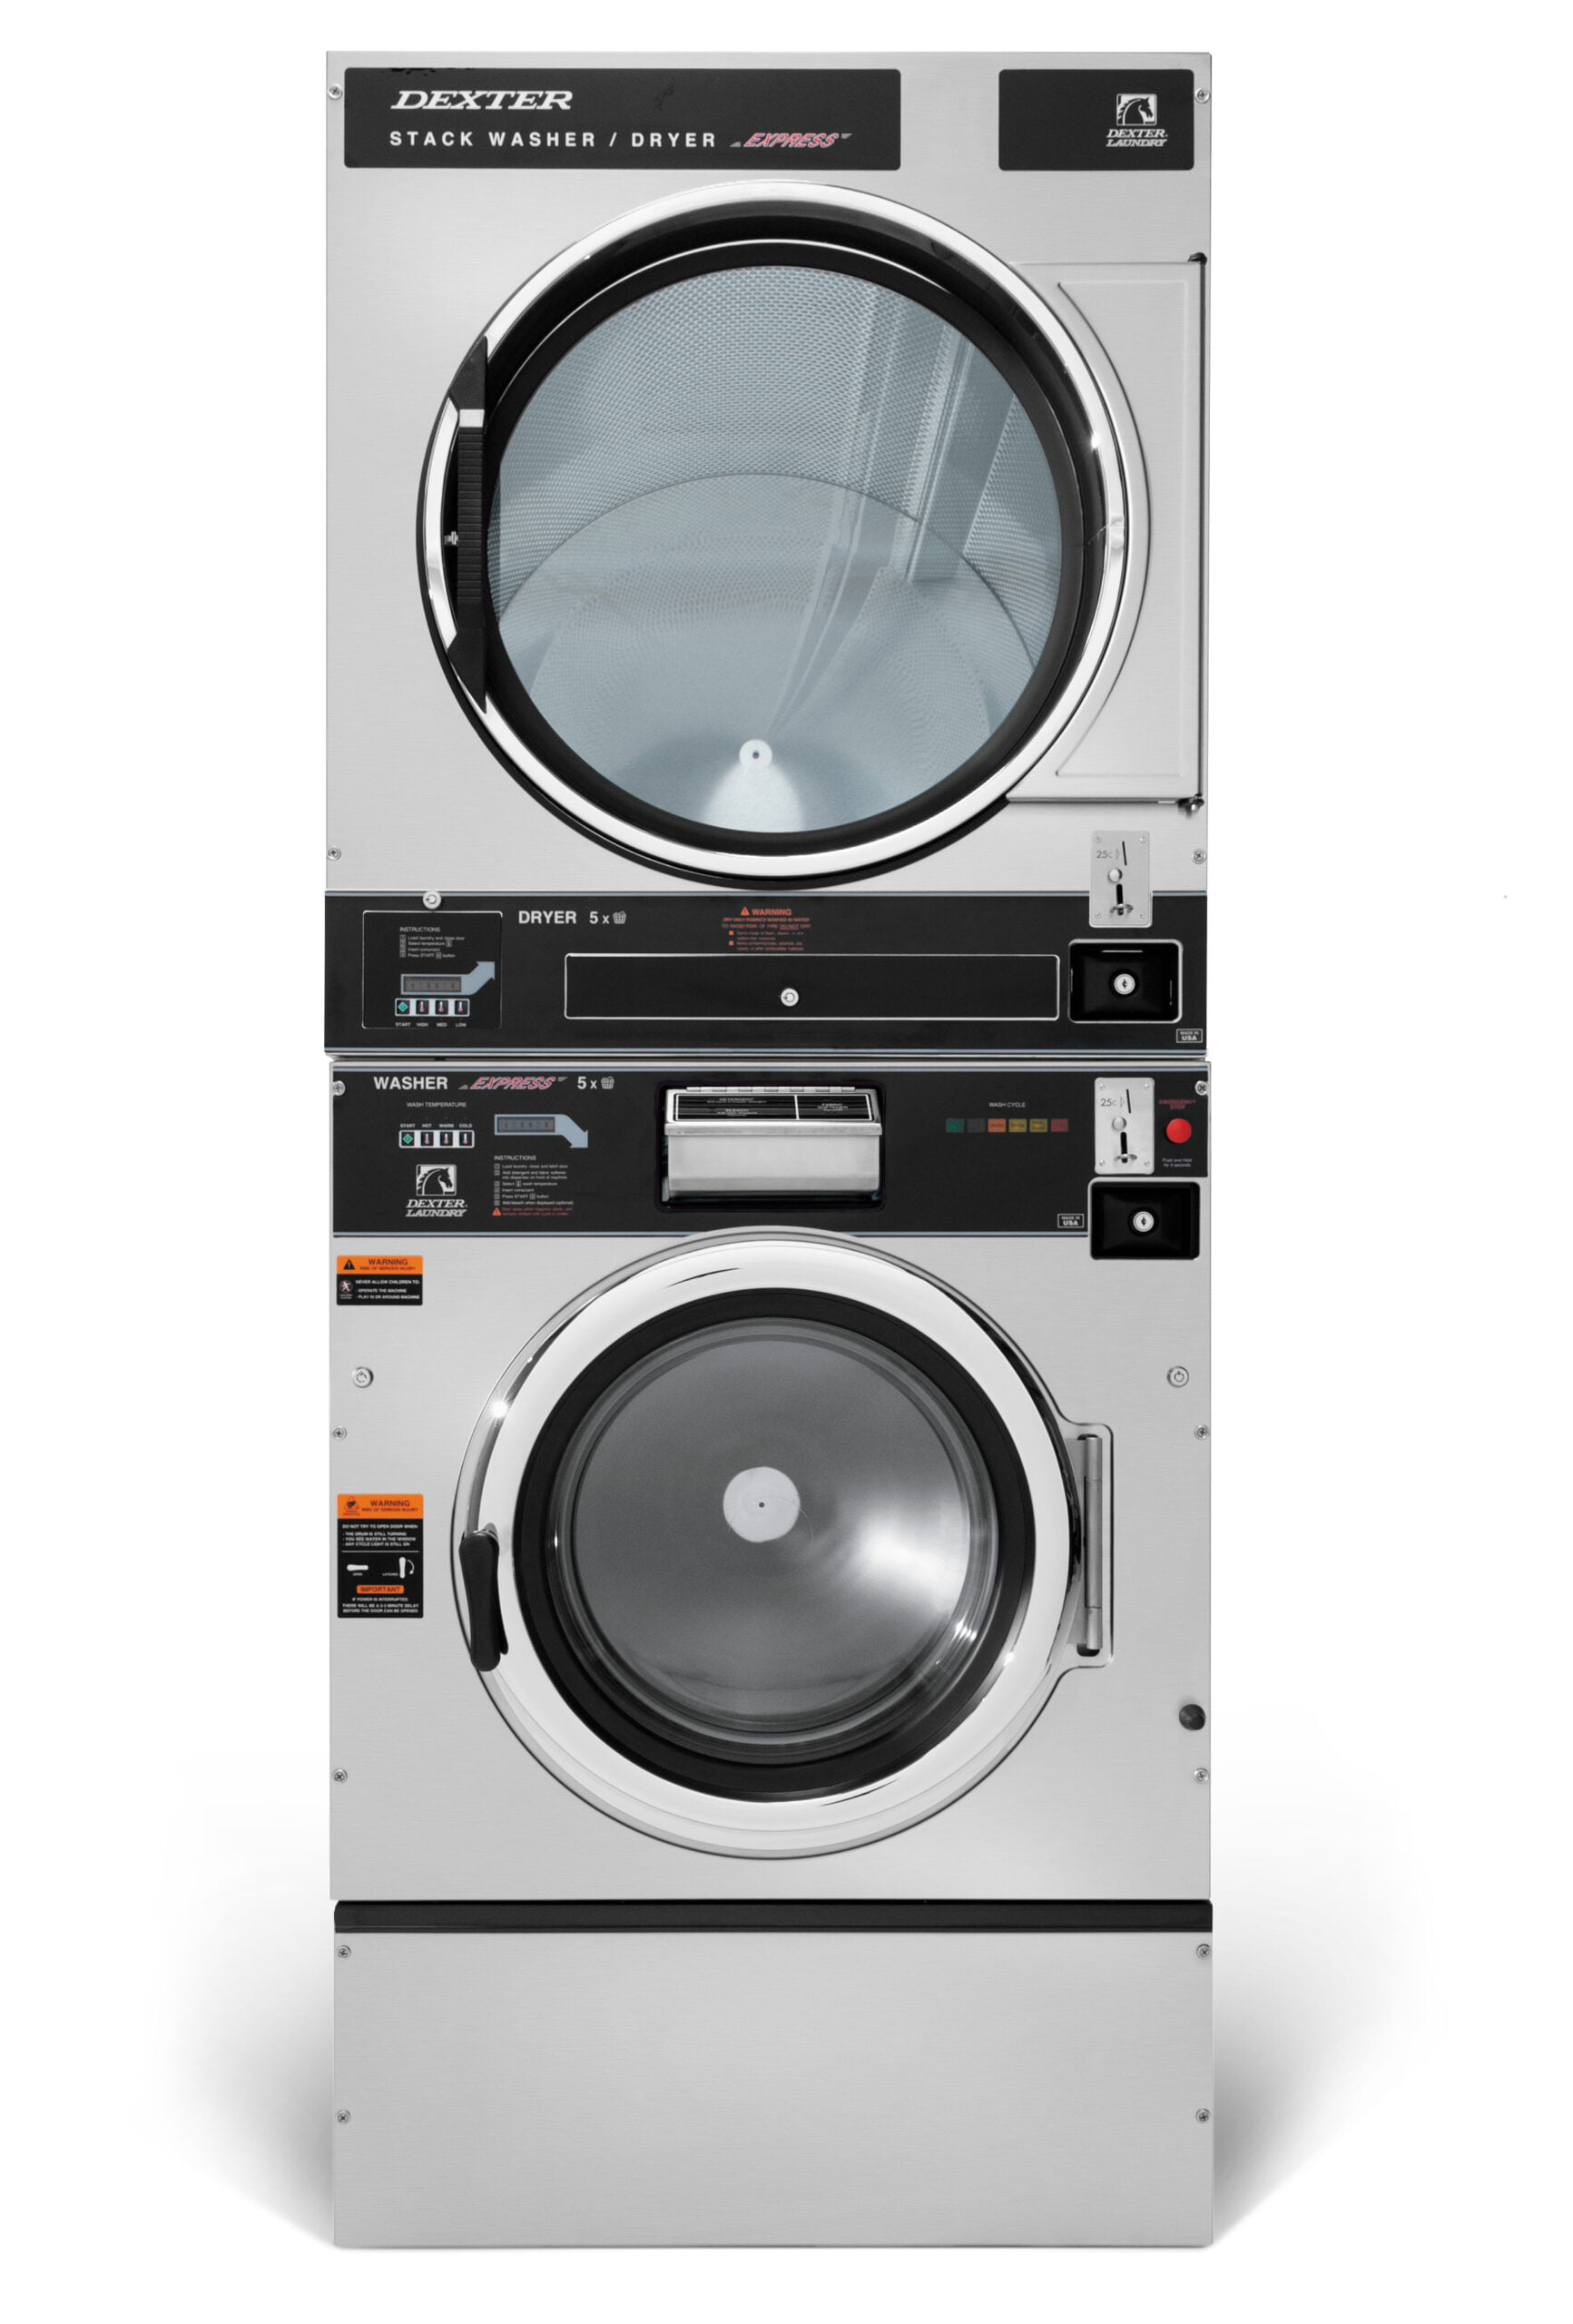 Dexter T-750 Washer Dryer Stack C Series Product Image